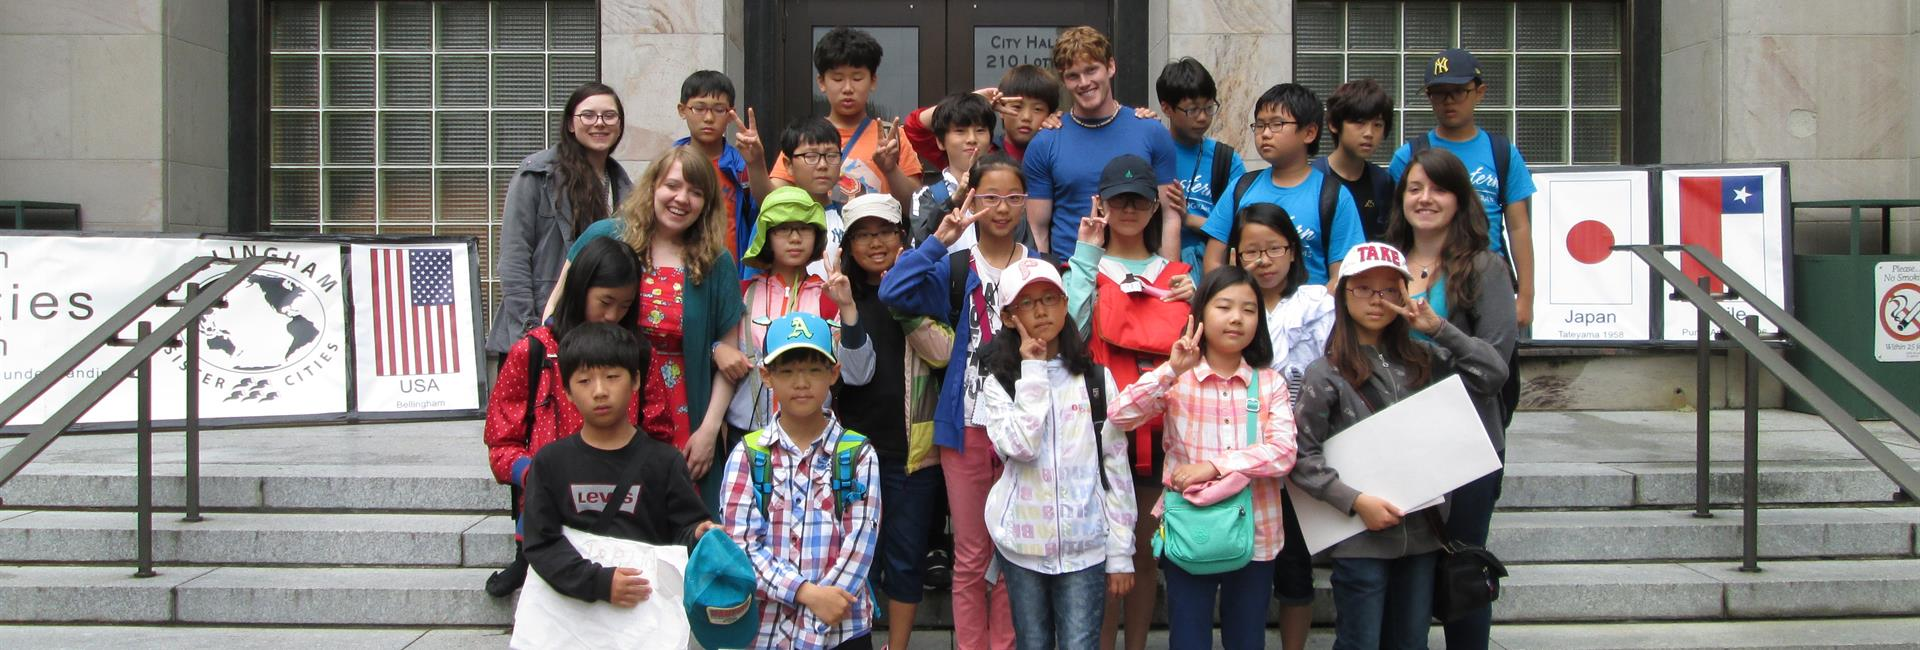 ​Visitors from Cheongju, South Korea, on the steps of City Hall<br> image